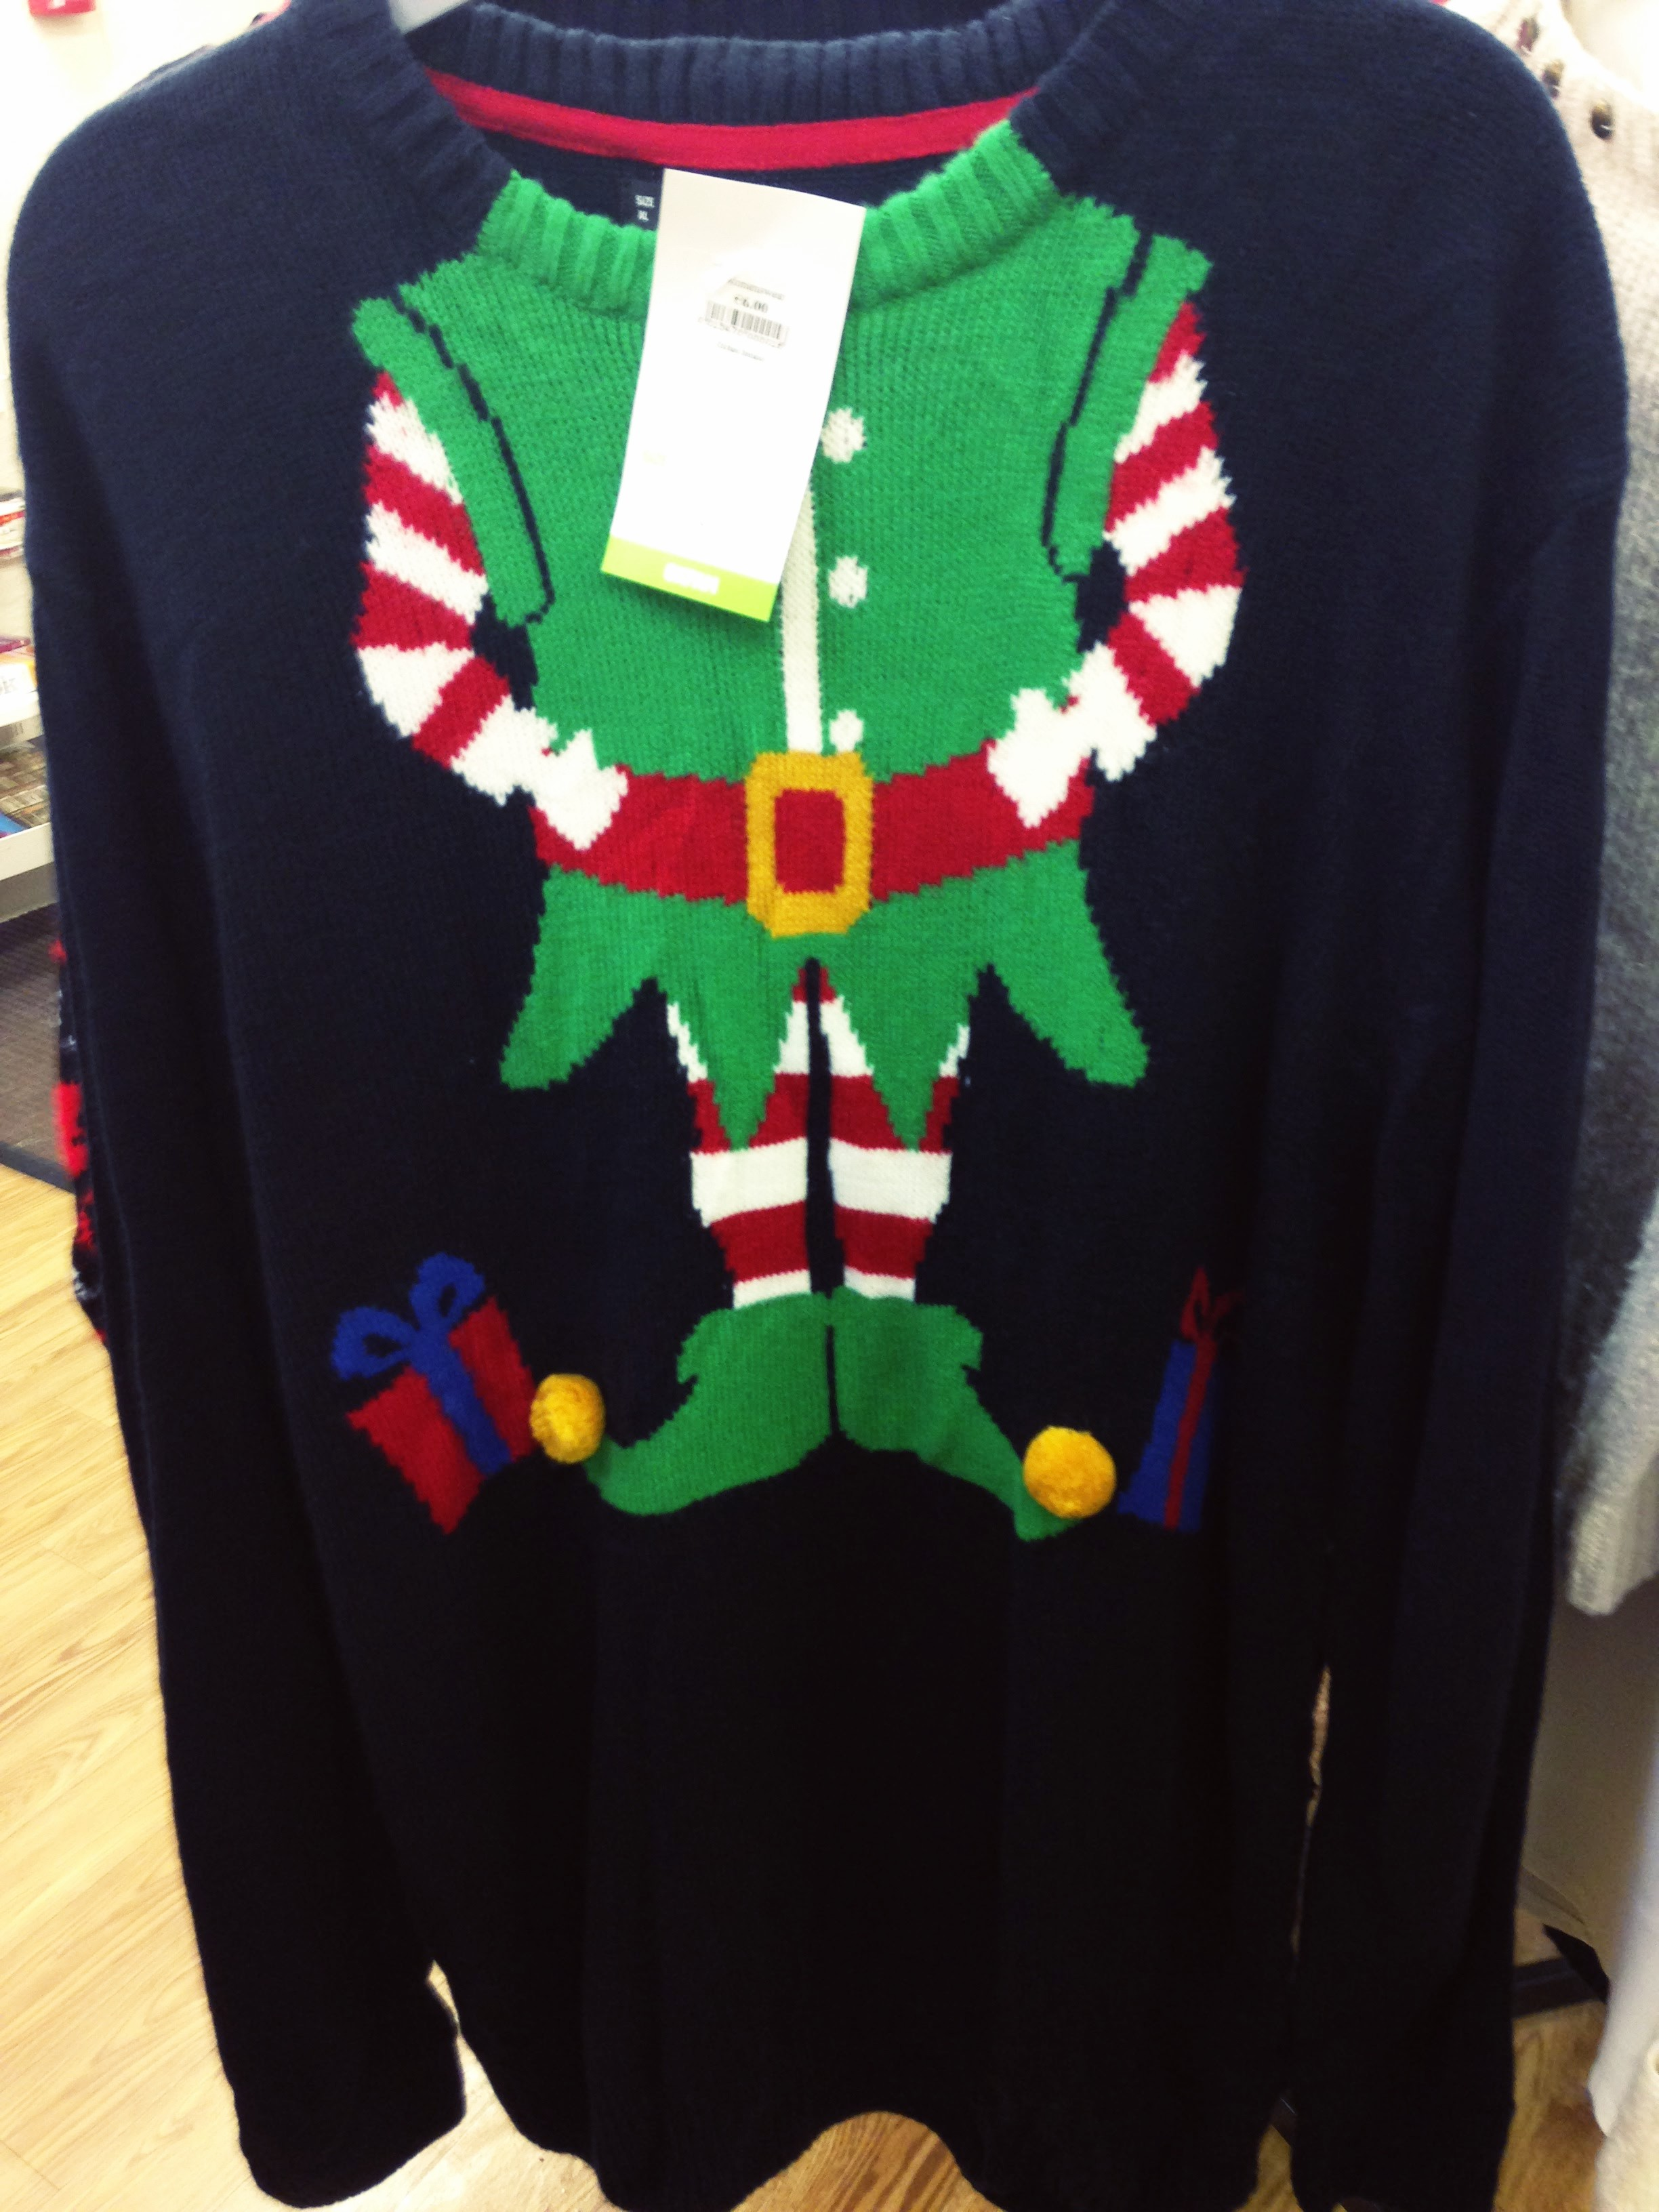 Long line xmas jumper from Oxfam Bray. Great value €6.00